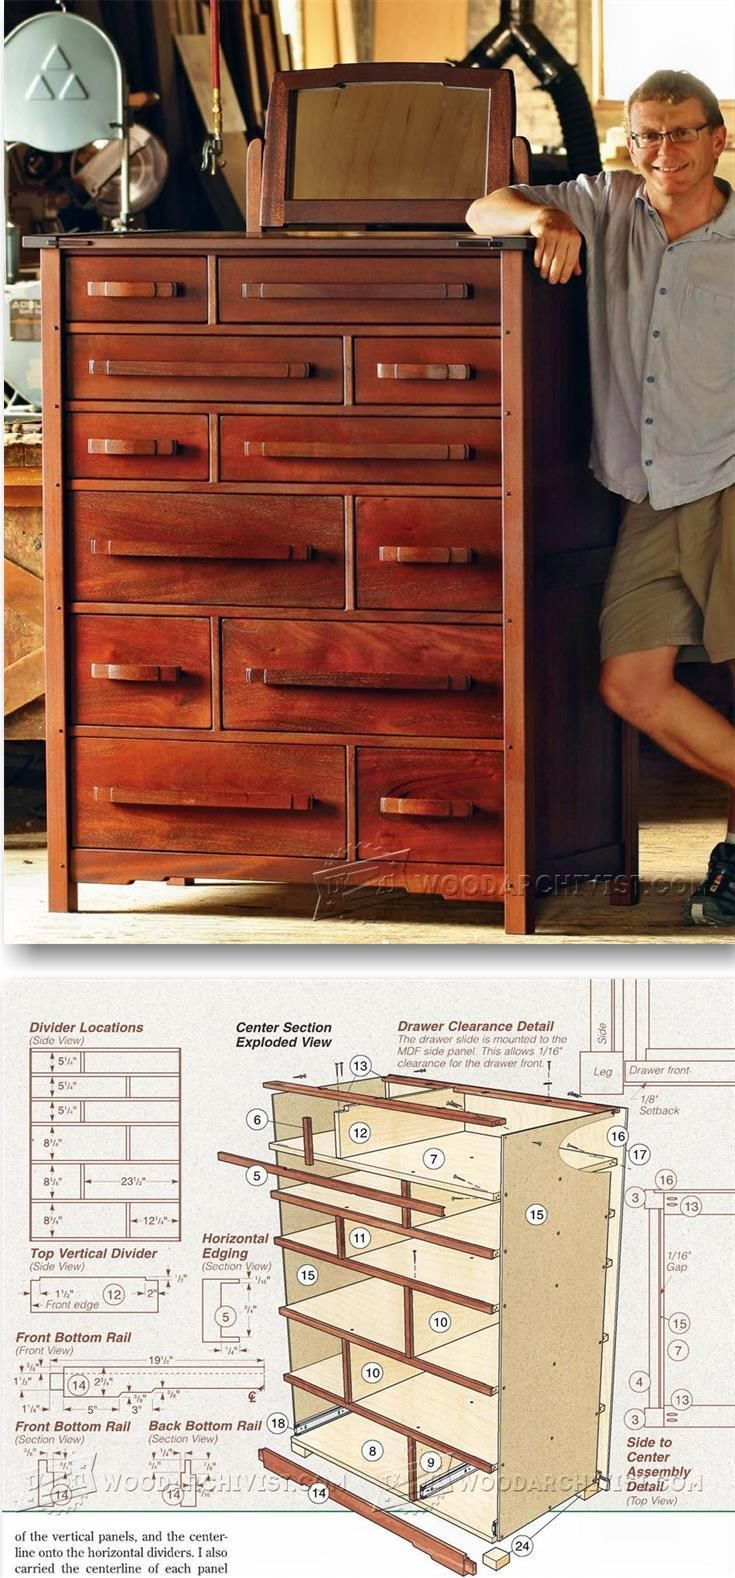 Making Wood Furniture Dresser Plans Furniture Plans And Projects Woodarchivistcom